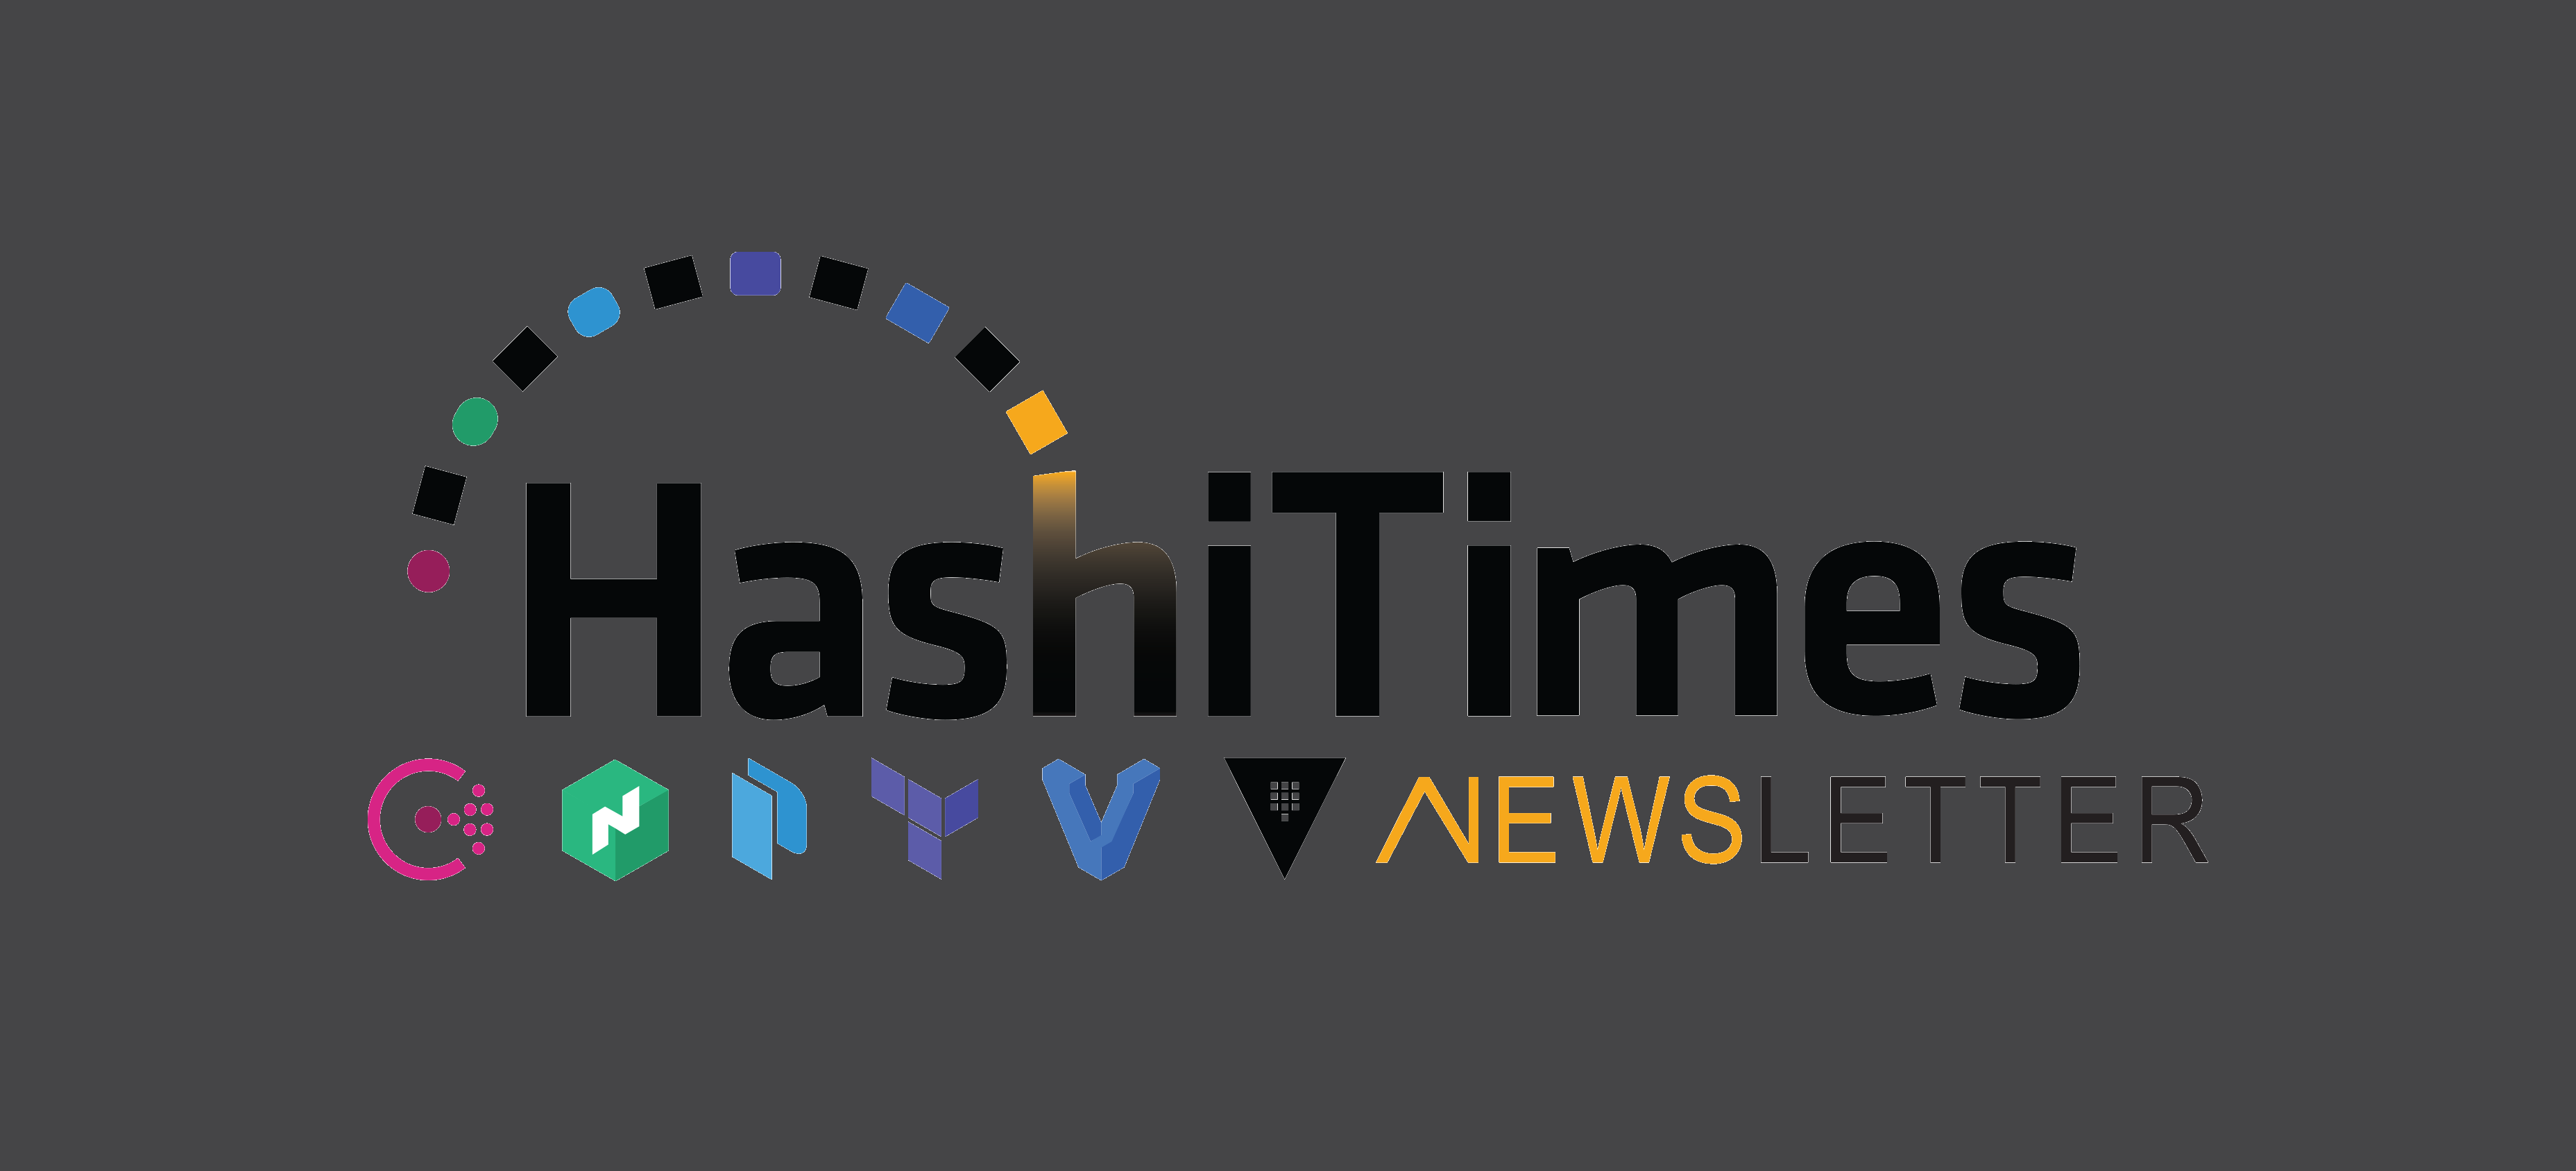 HashiTimes Newsletter - Issue 1 - It All Started from Here